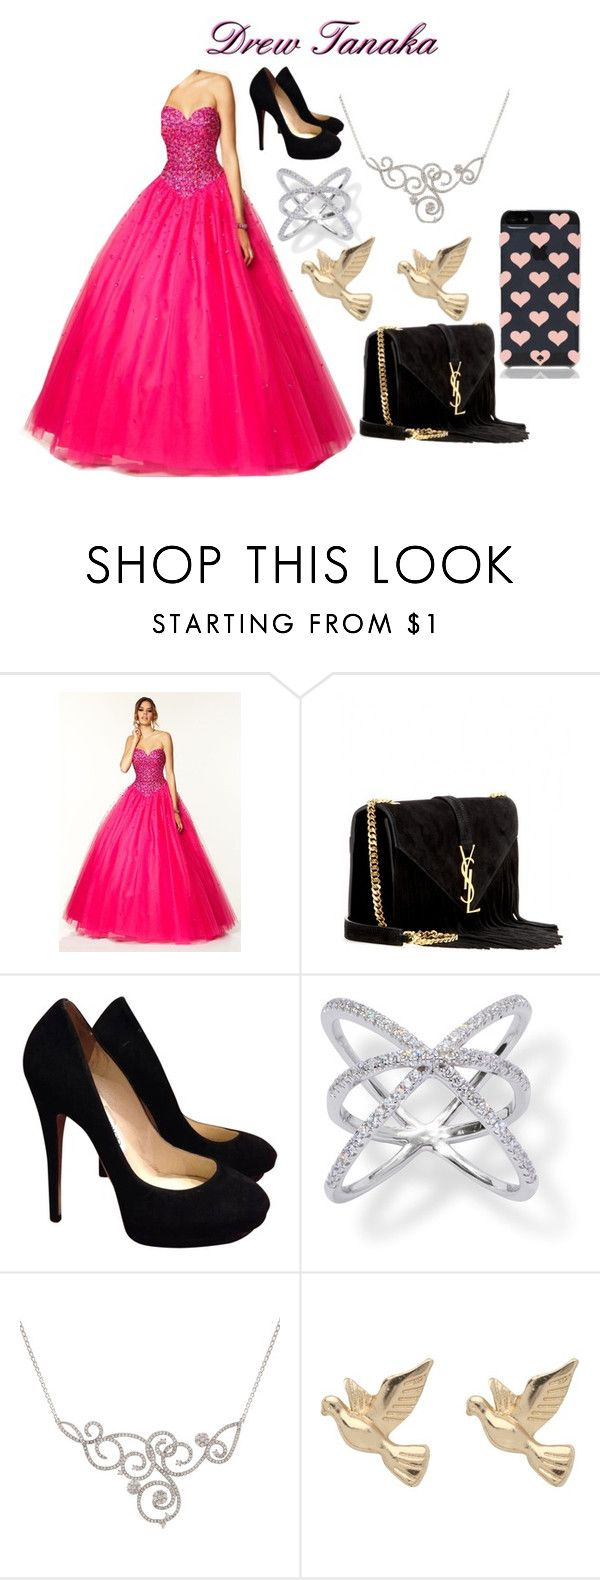 """Drew Tanaka at Prom"" by hope-257 ❤ liked on Polyvore featuring Yves Saint Laurent, Jimmy Choo, M&Co and Kate Spade"